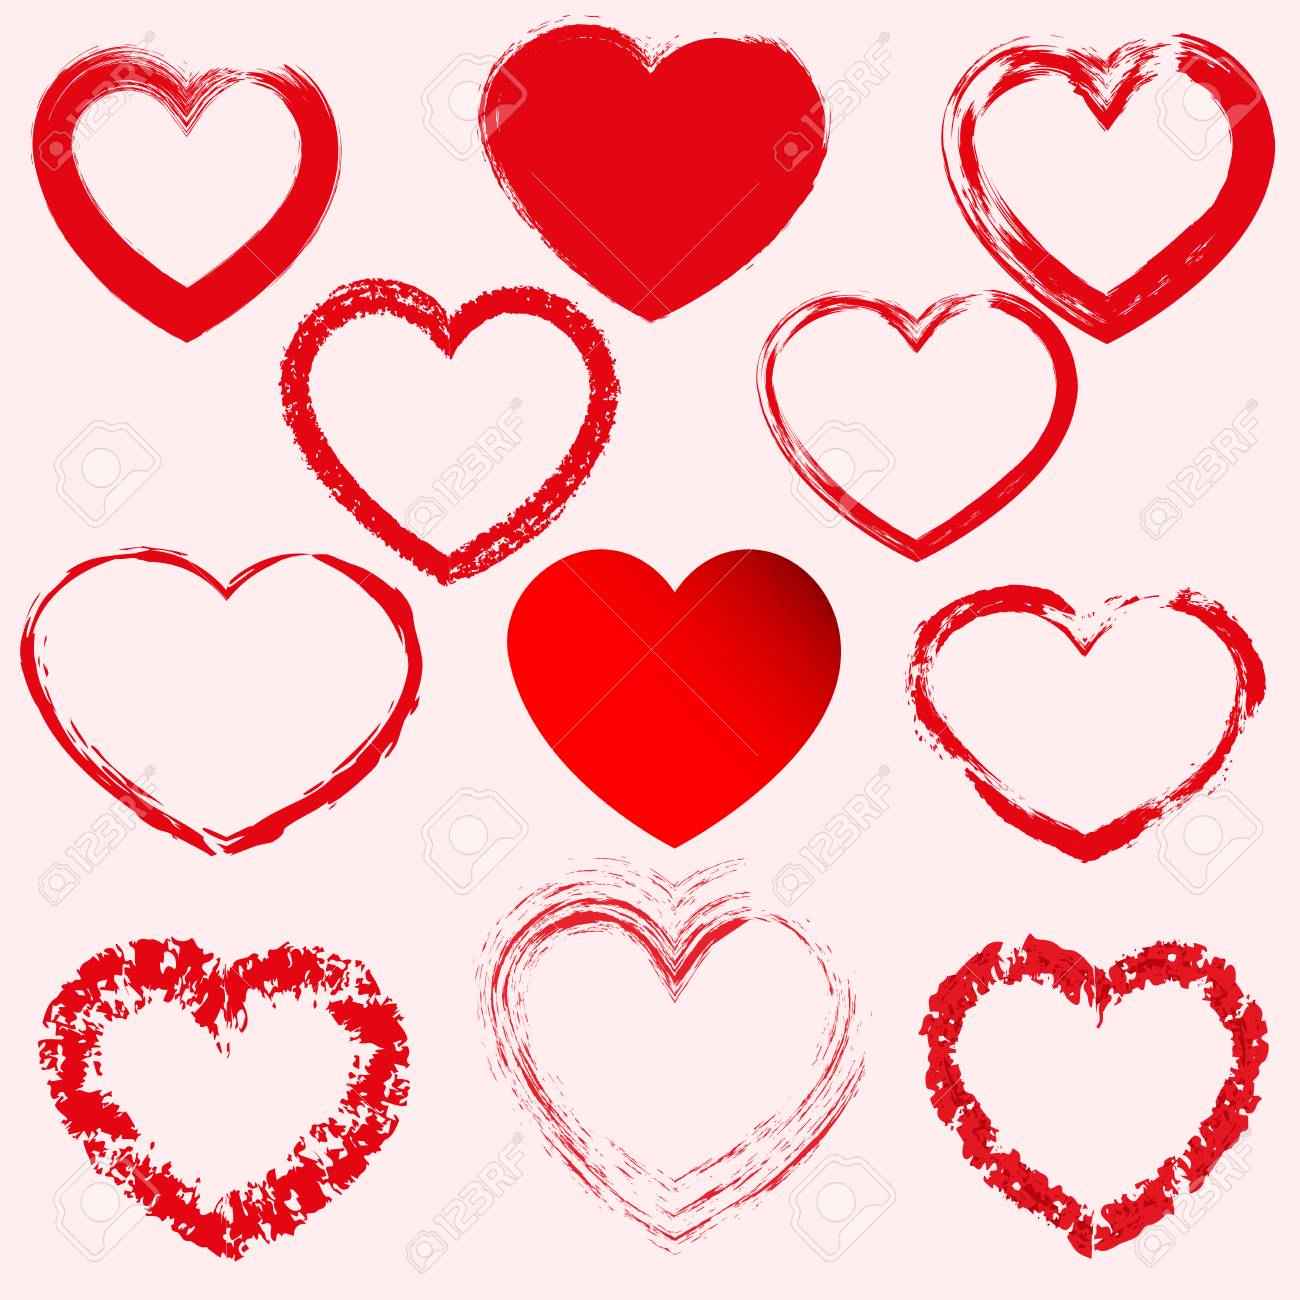 Hand drawn hearts. Design elements for Valentine s day. - 120929708